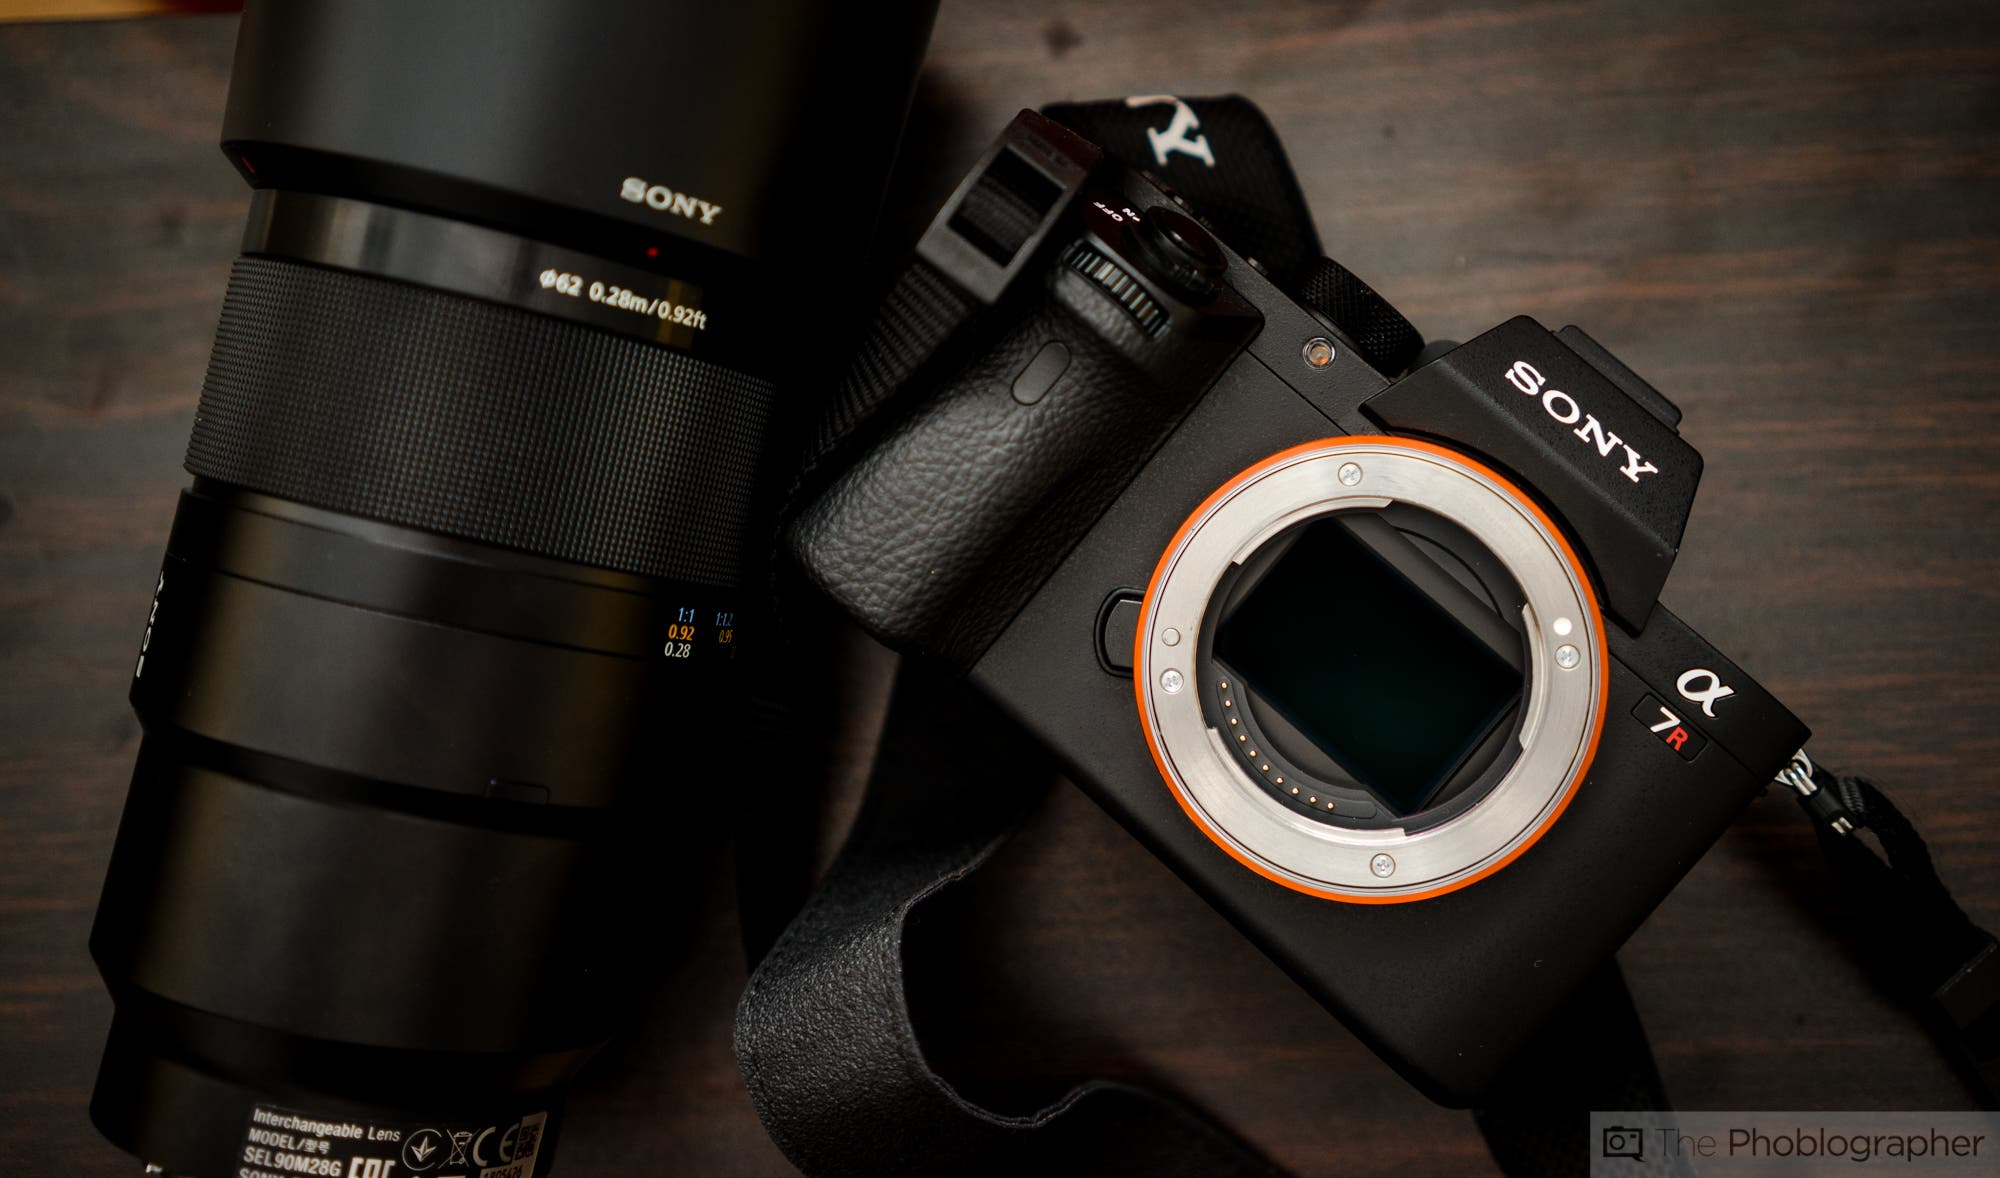 Cheap Photo: Snap Up These Camera Deals While You Still Can! Sony A7R II for $1,598 + More